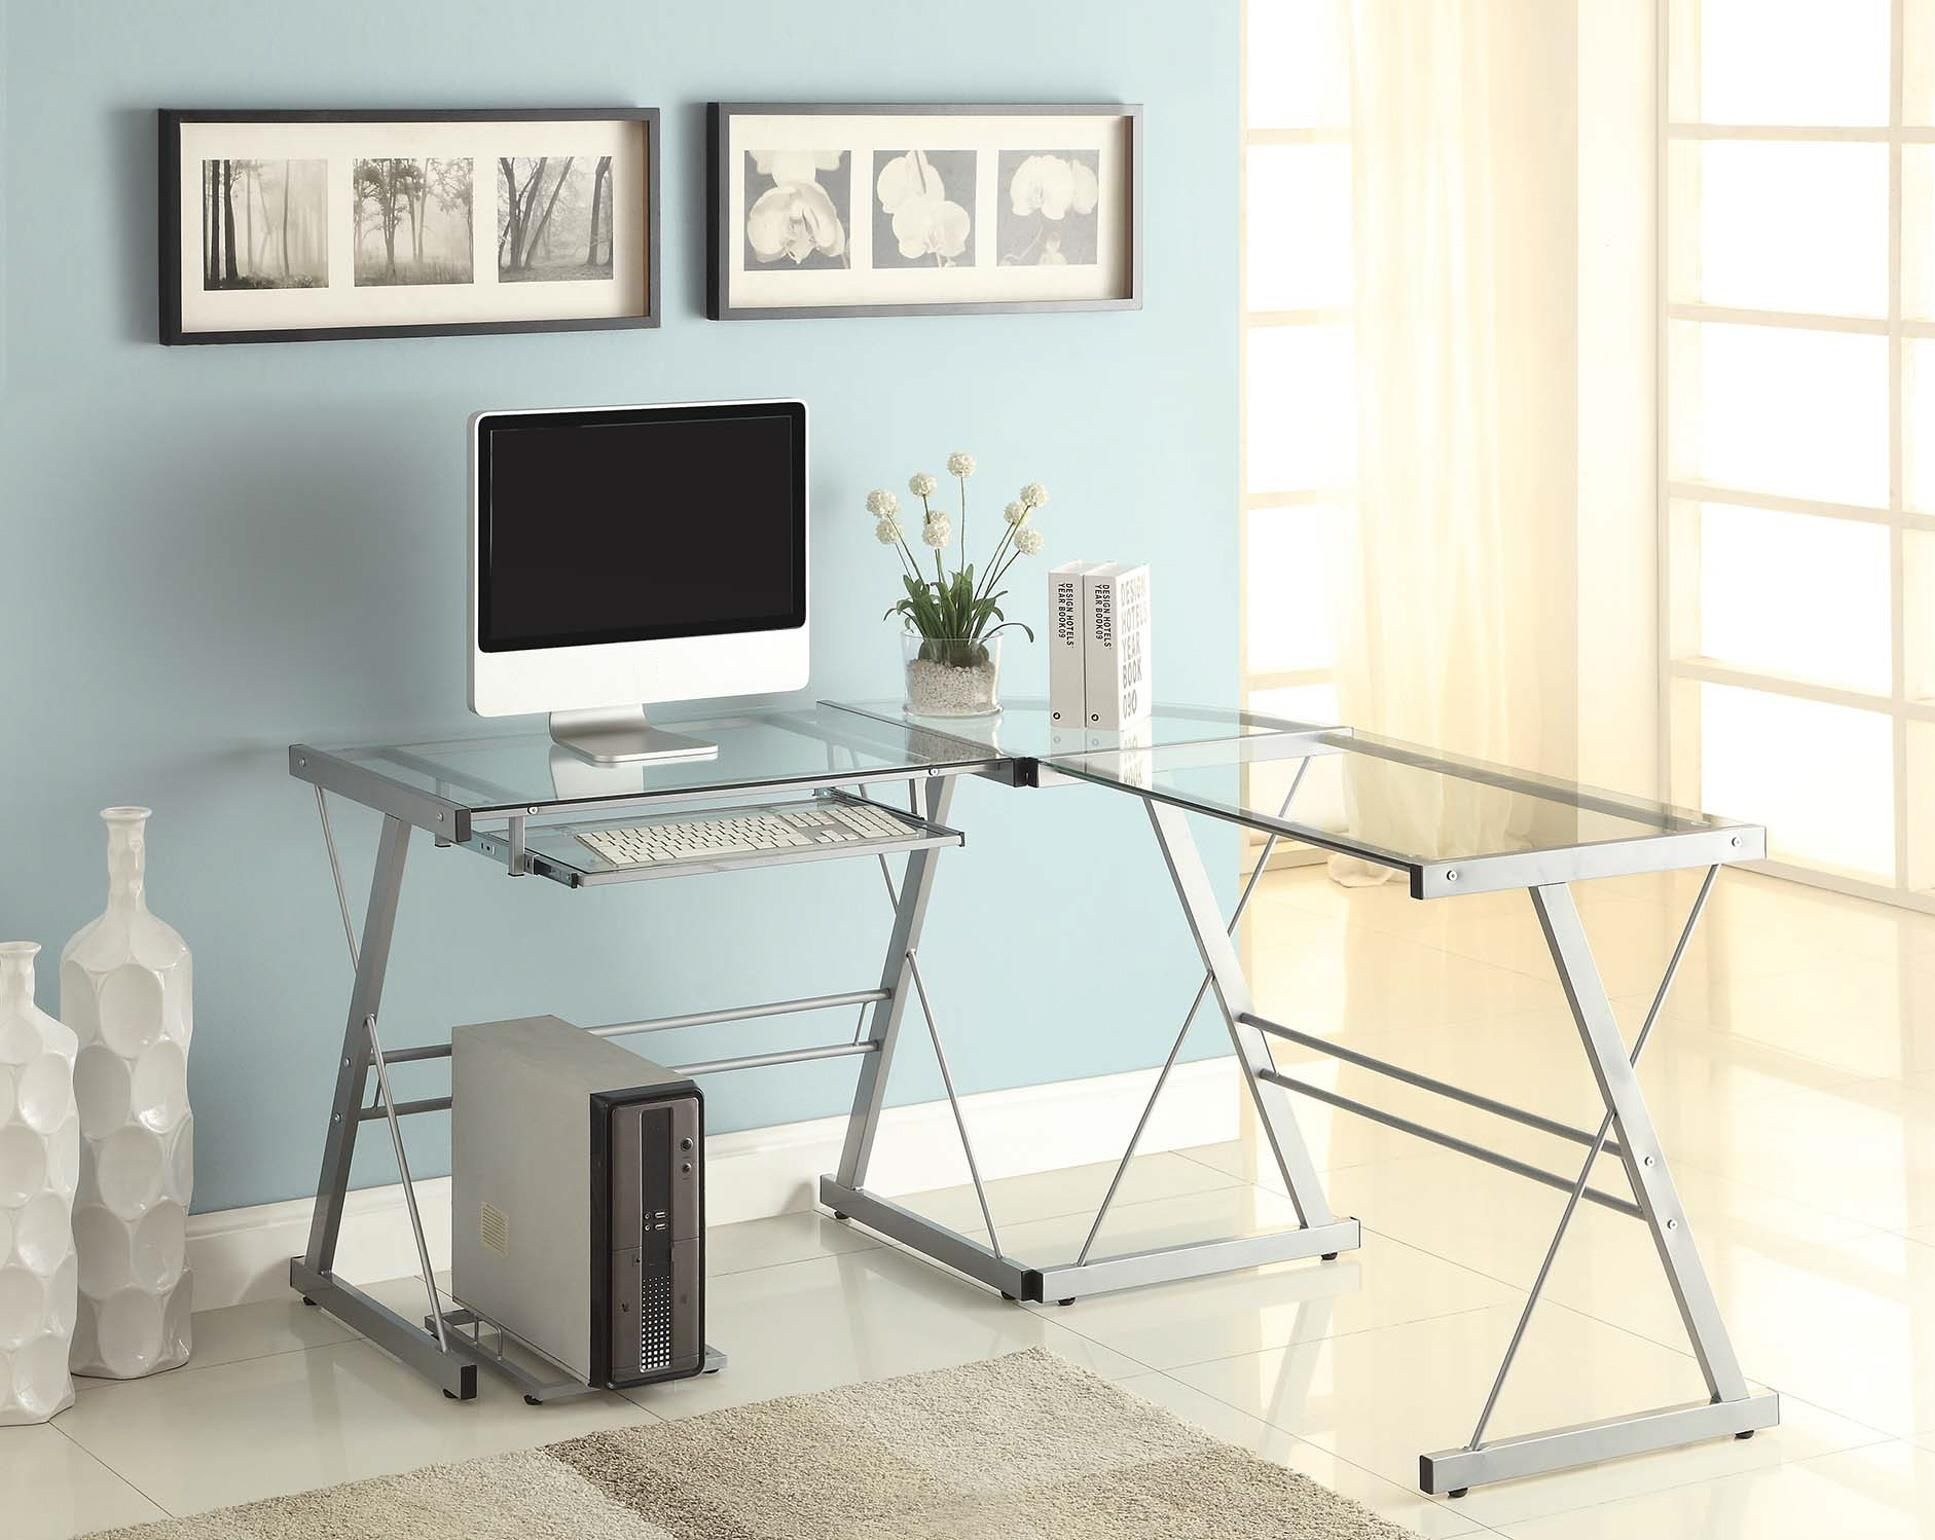 used desks for home office. Used Desks For Home Office - Diy Corner Desk Ideas Check More At Http://www.gameintown.com/used-desks-for-home-office/ E